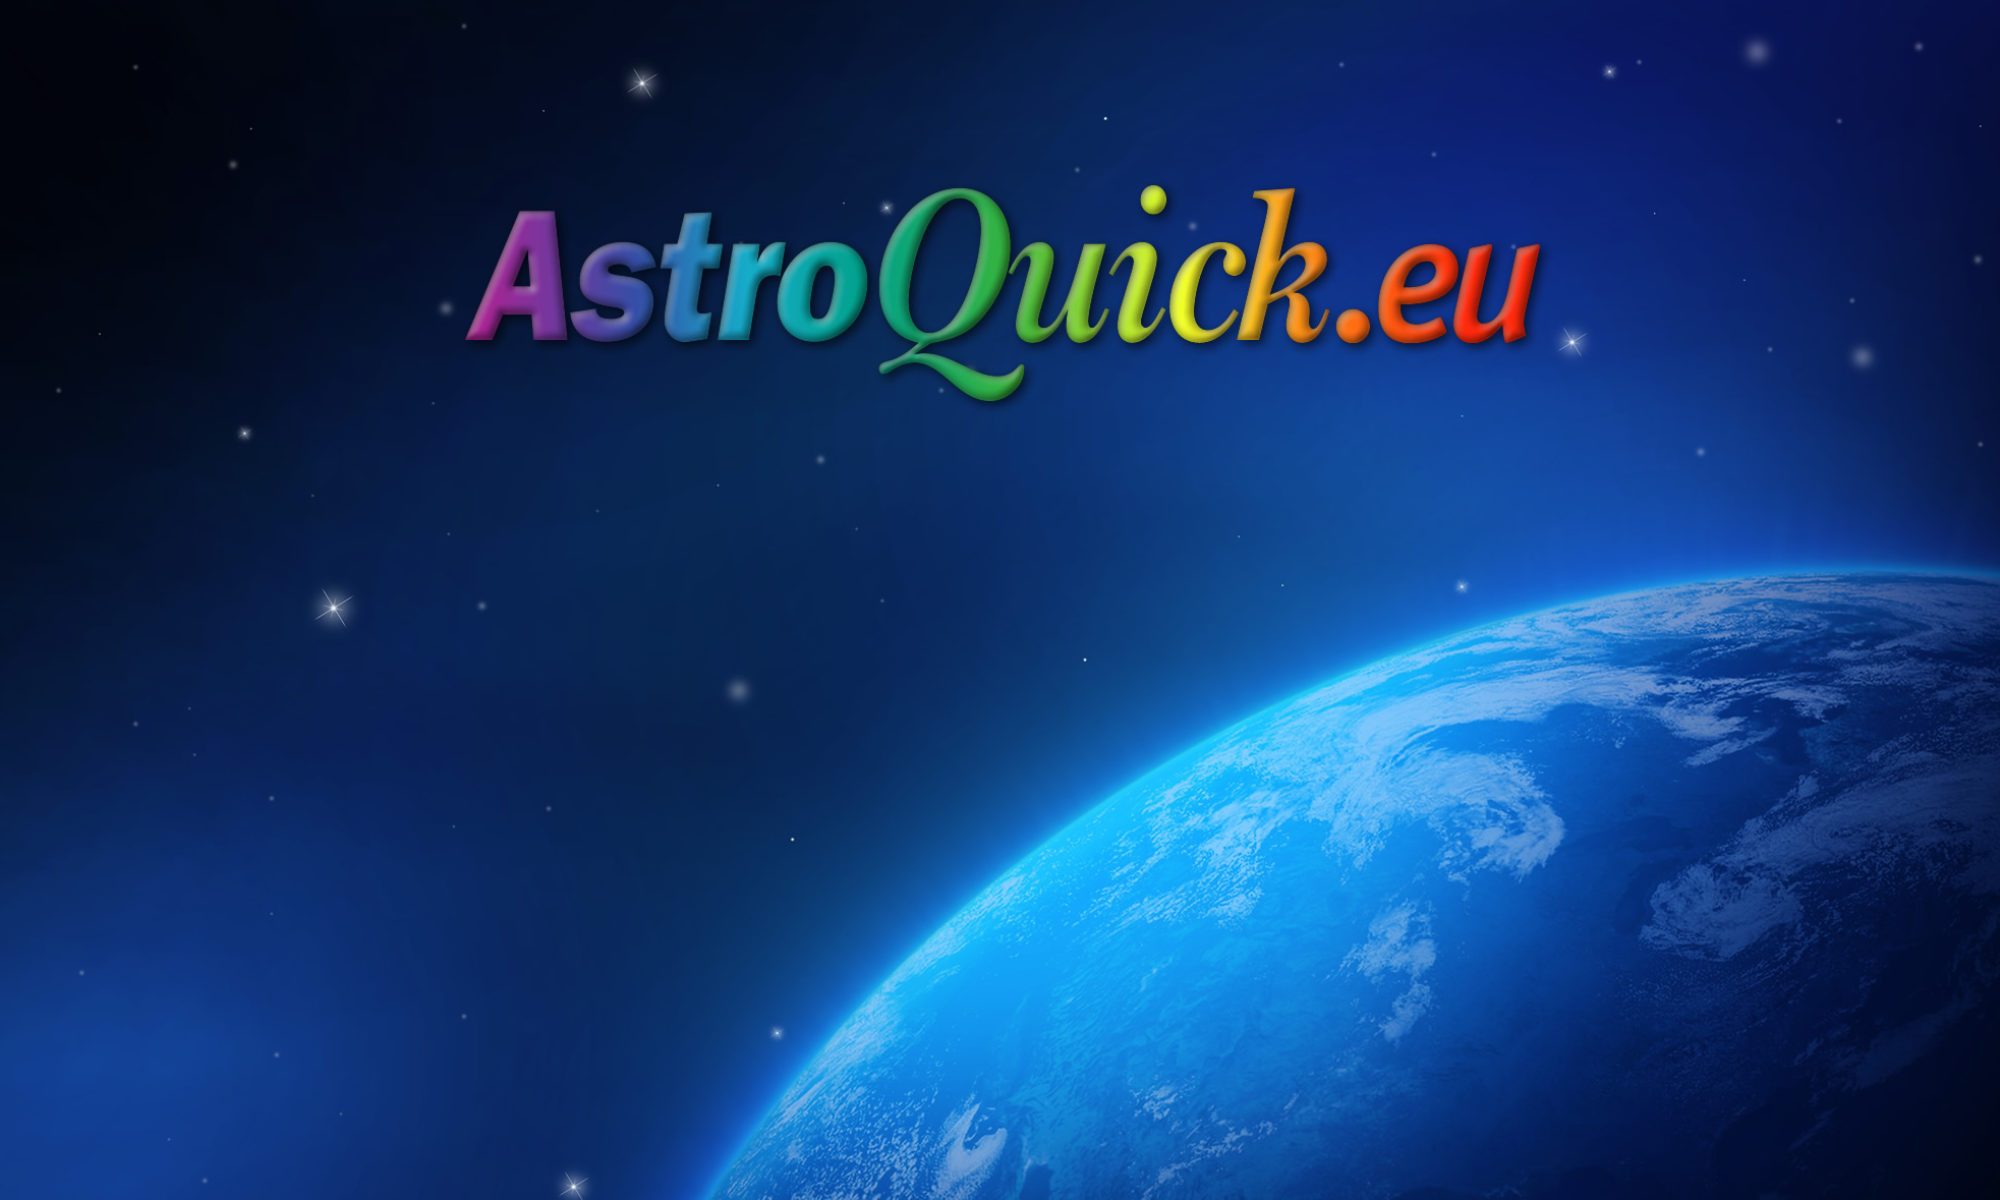 AstroQuick éditions